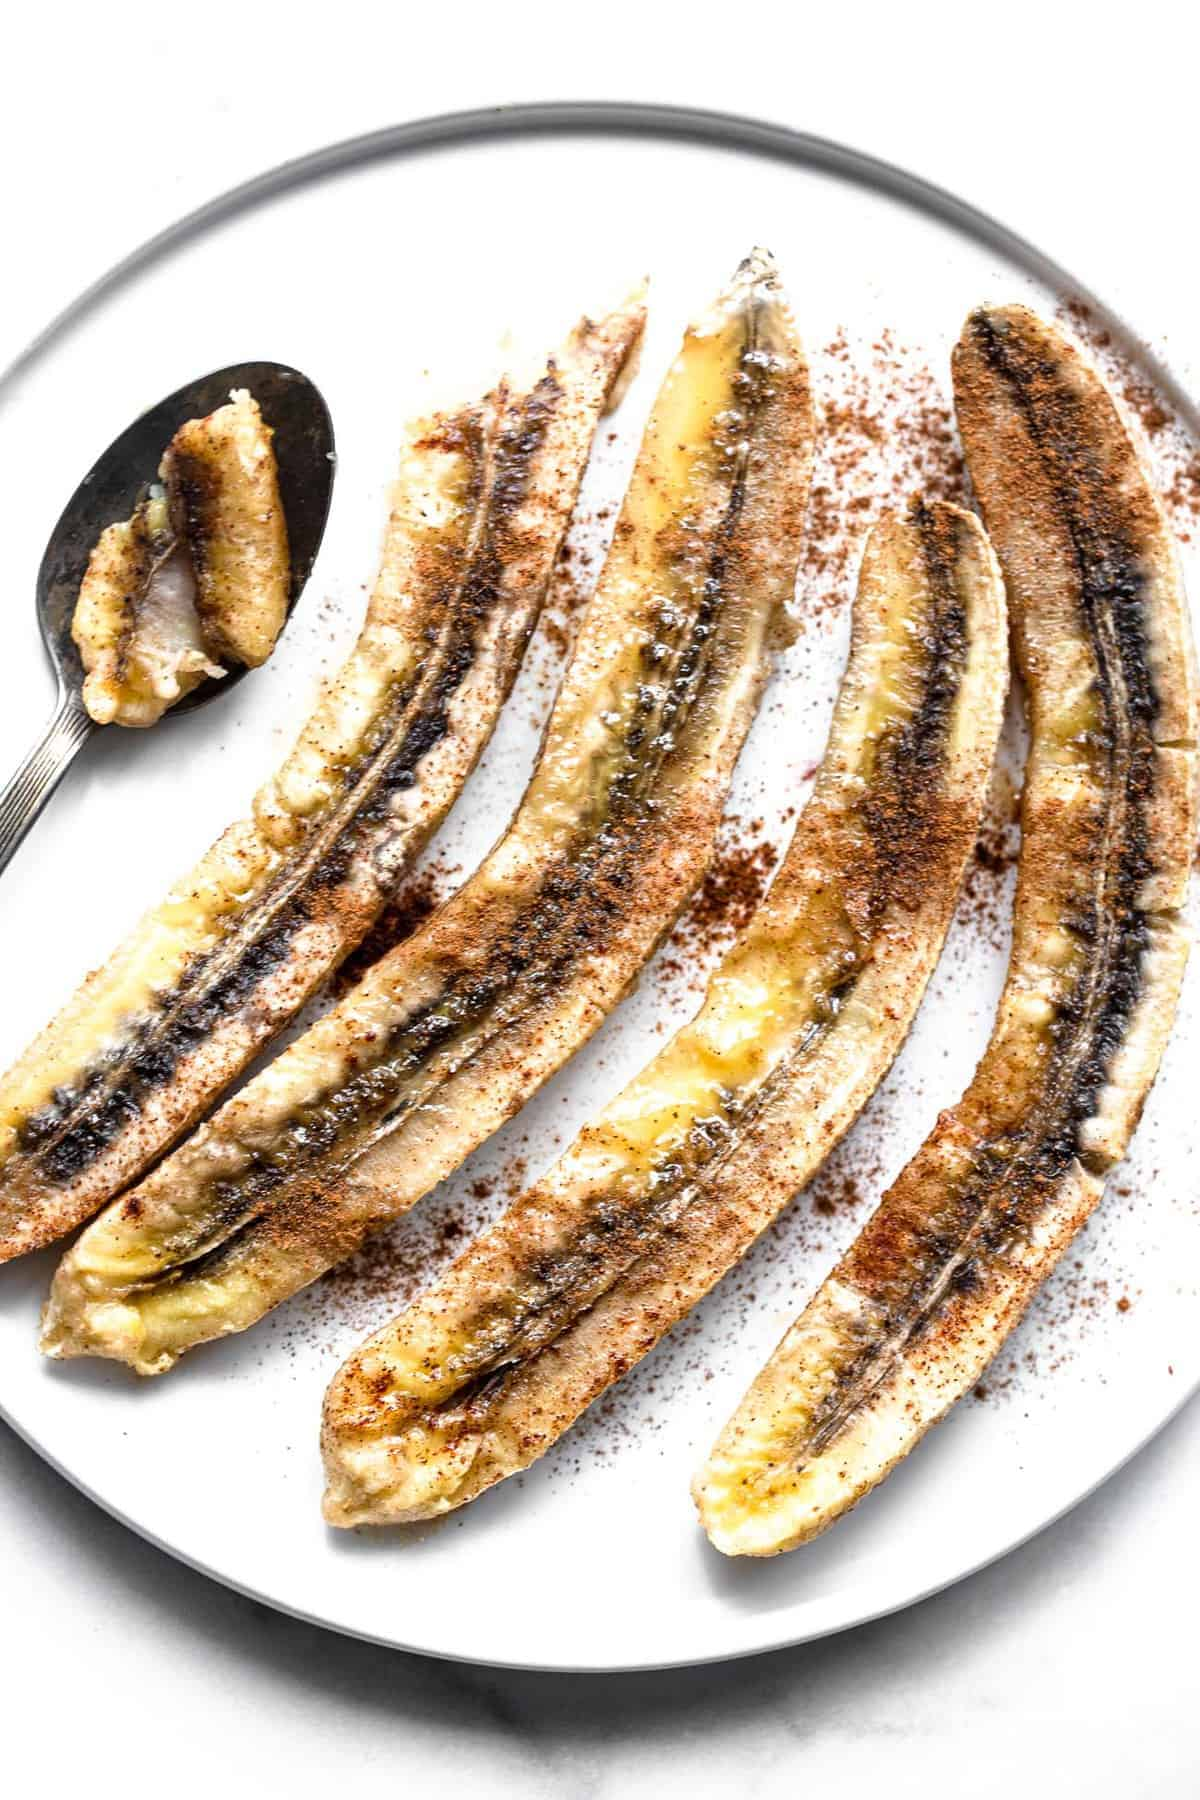 4 baked bananas on a plate with cinnamon on top